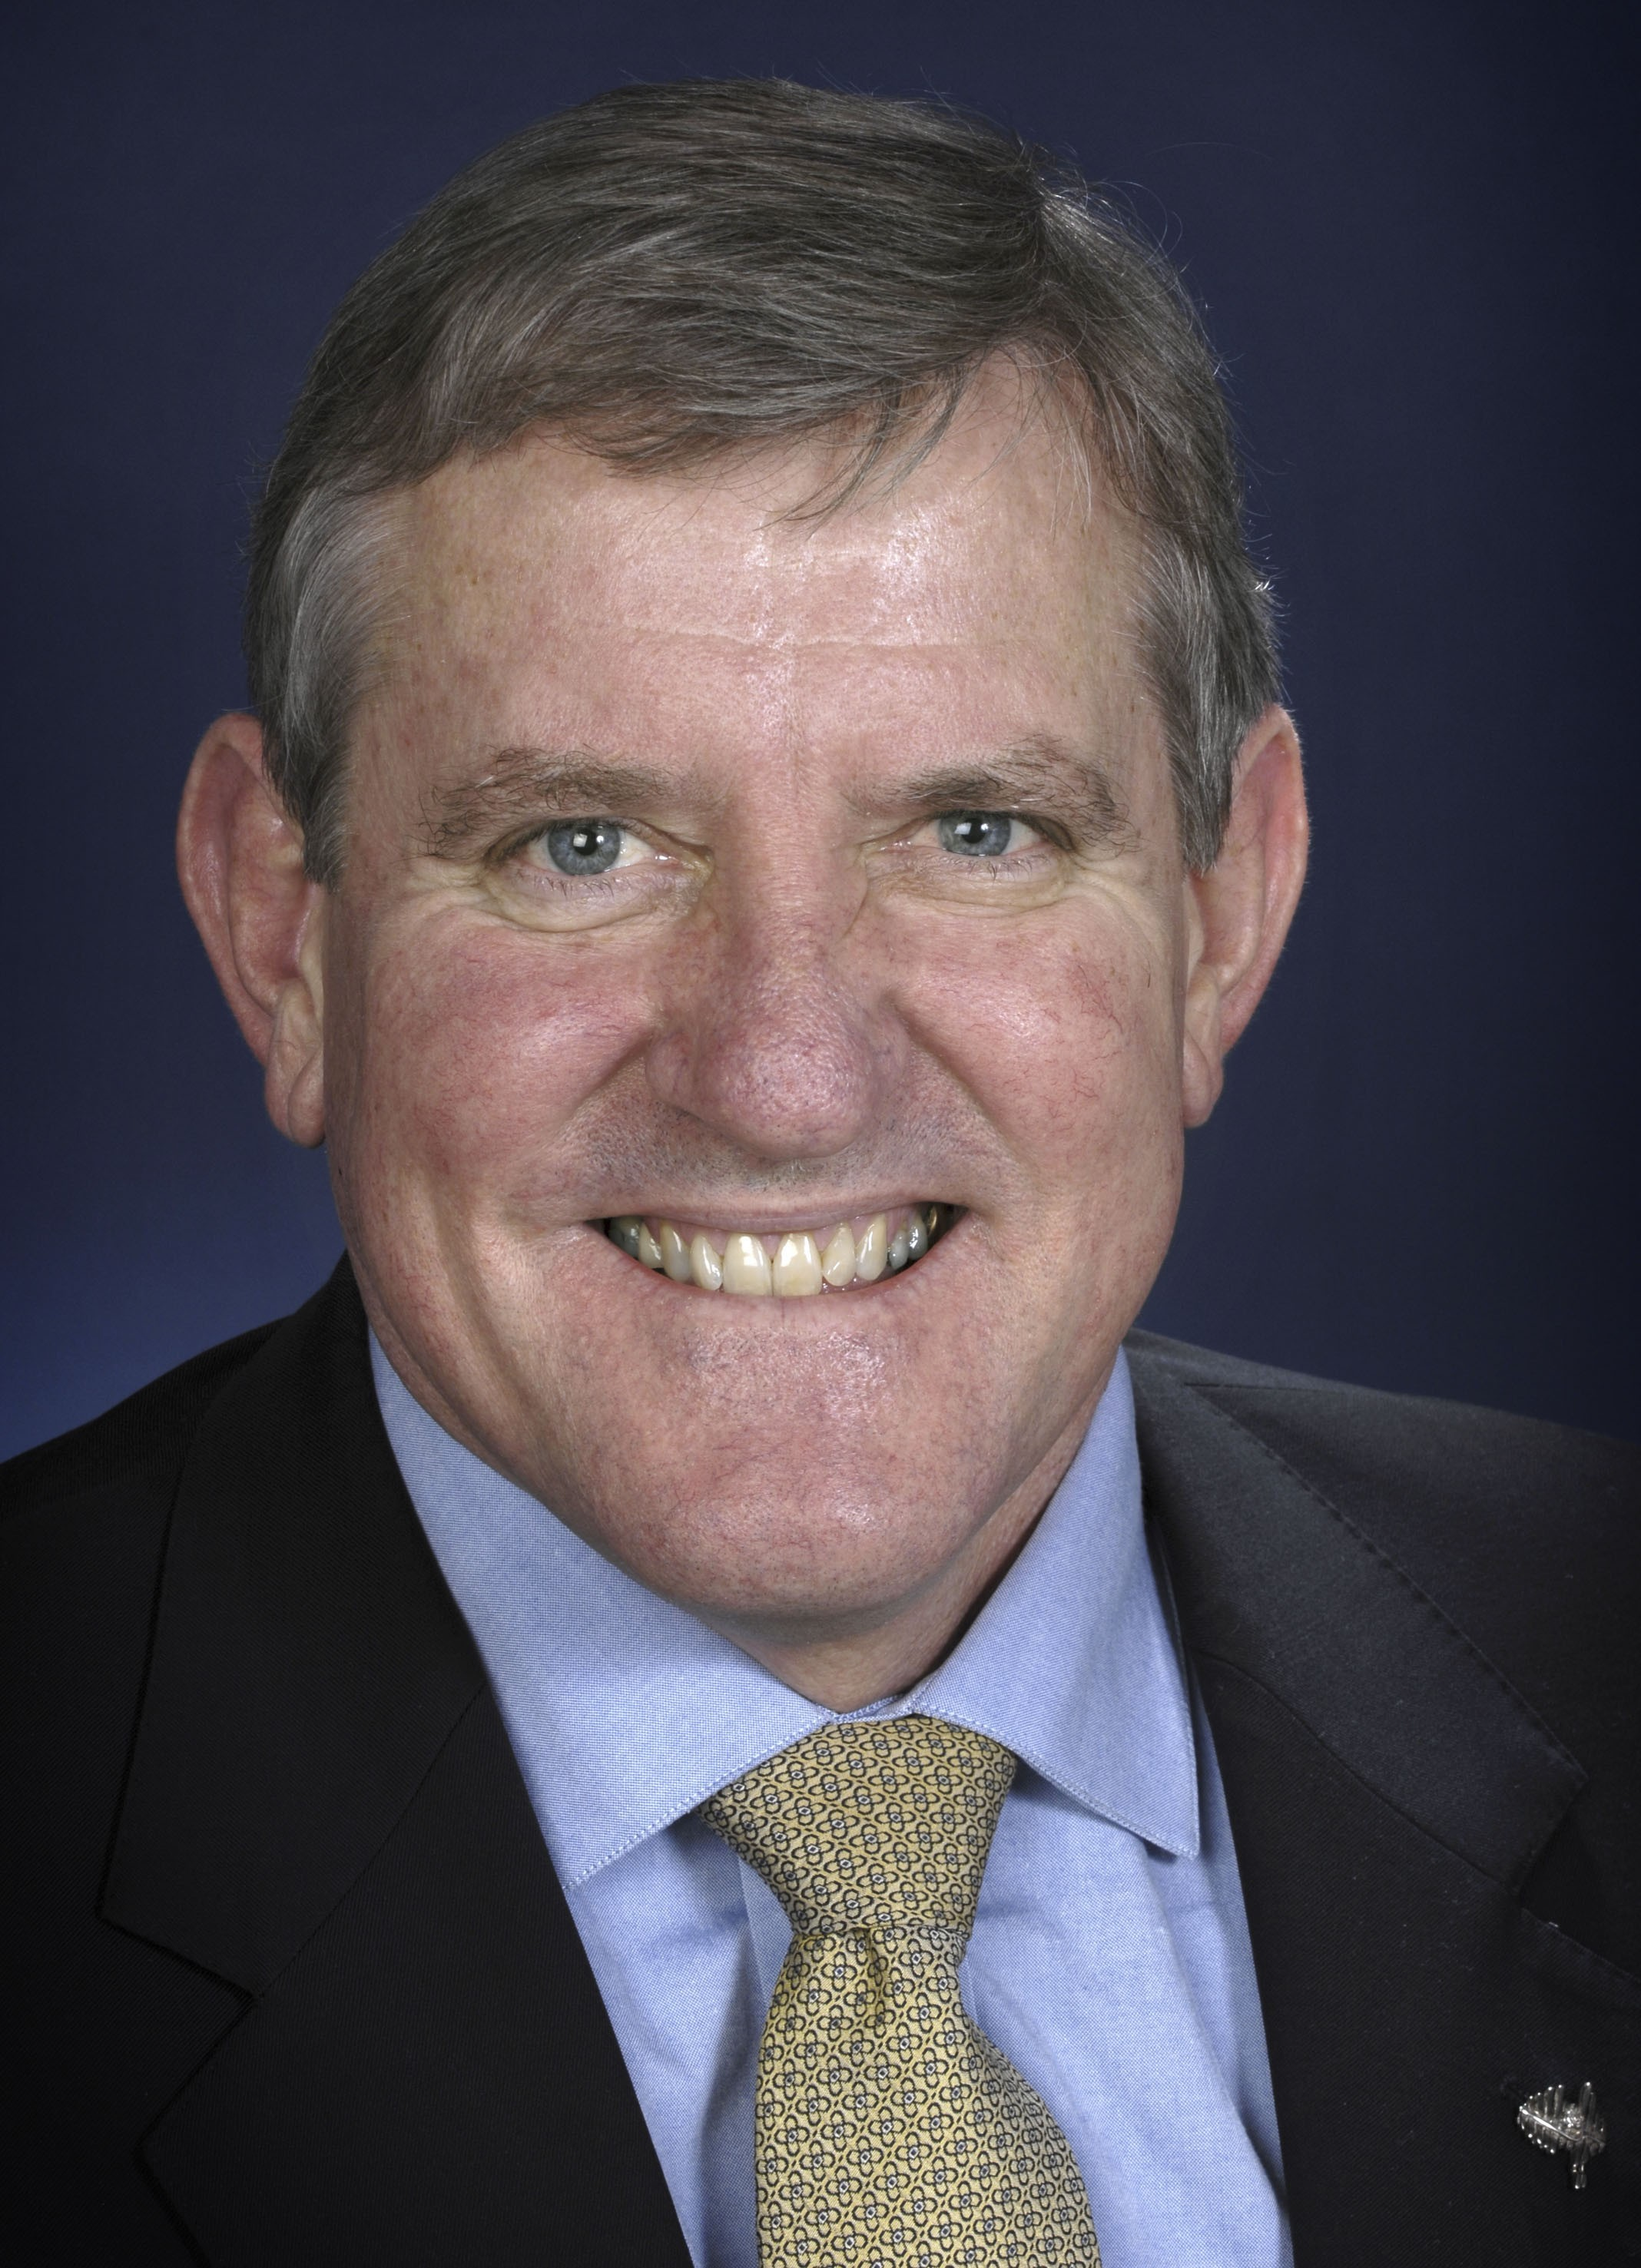 Portrait image of Hon Ian Macfarlane MP.